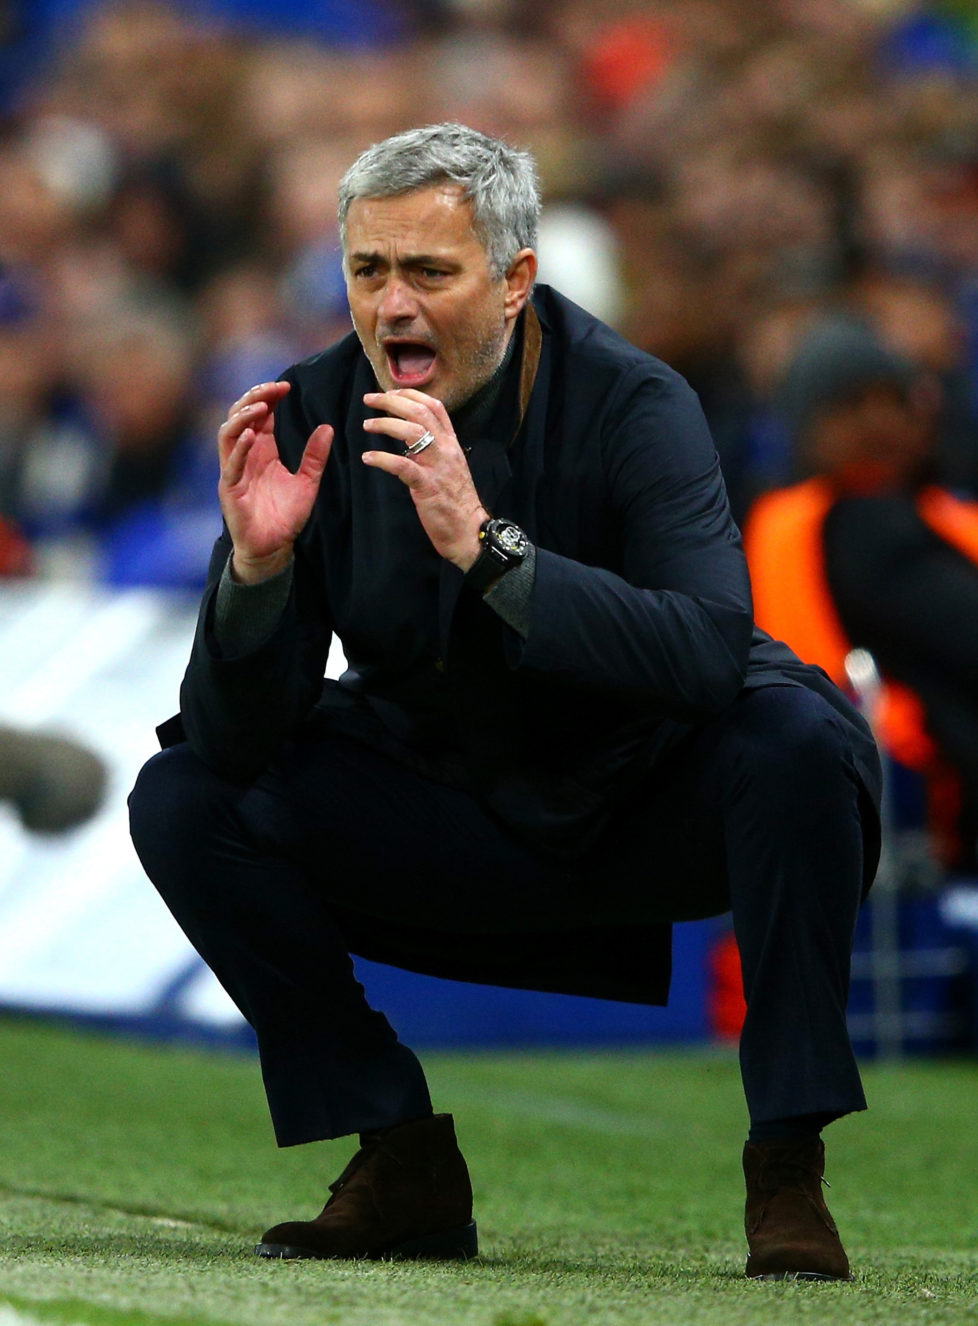 LONDON, ENGLAND - DECEMBER 09: Jose Mourinho manager of Chelsea reacts during the UEFA Champions League Group G match between Chelsea FC and FC Porto at Stamford Bridge on December 9, 2015 in London, United Kingdom. (Photo by Clive Mason/Getty Images)